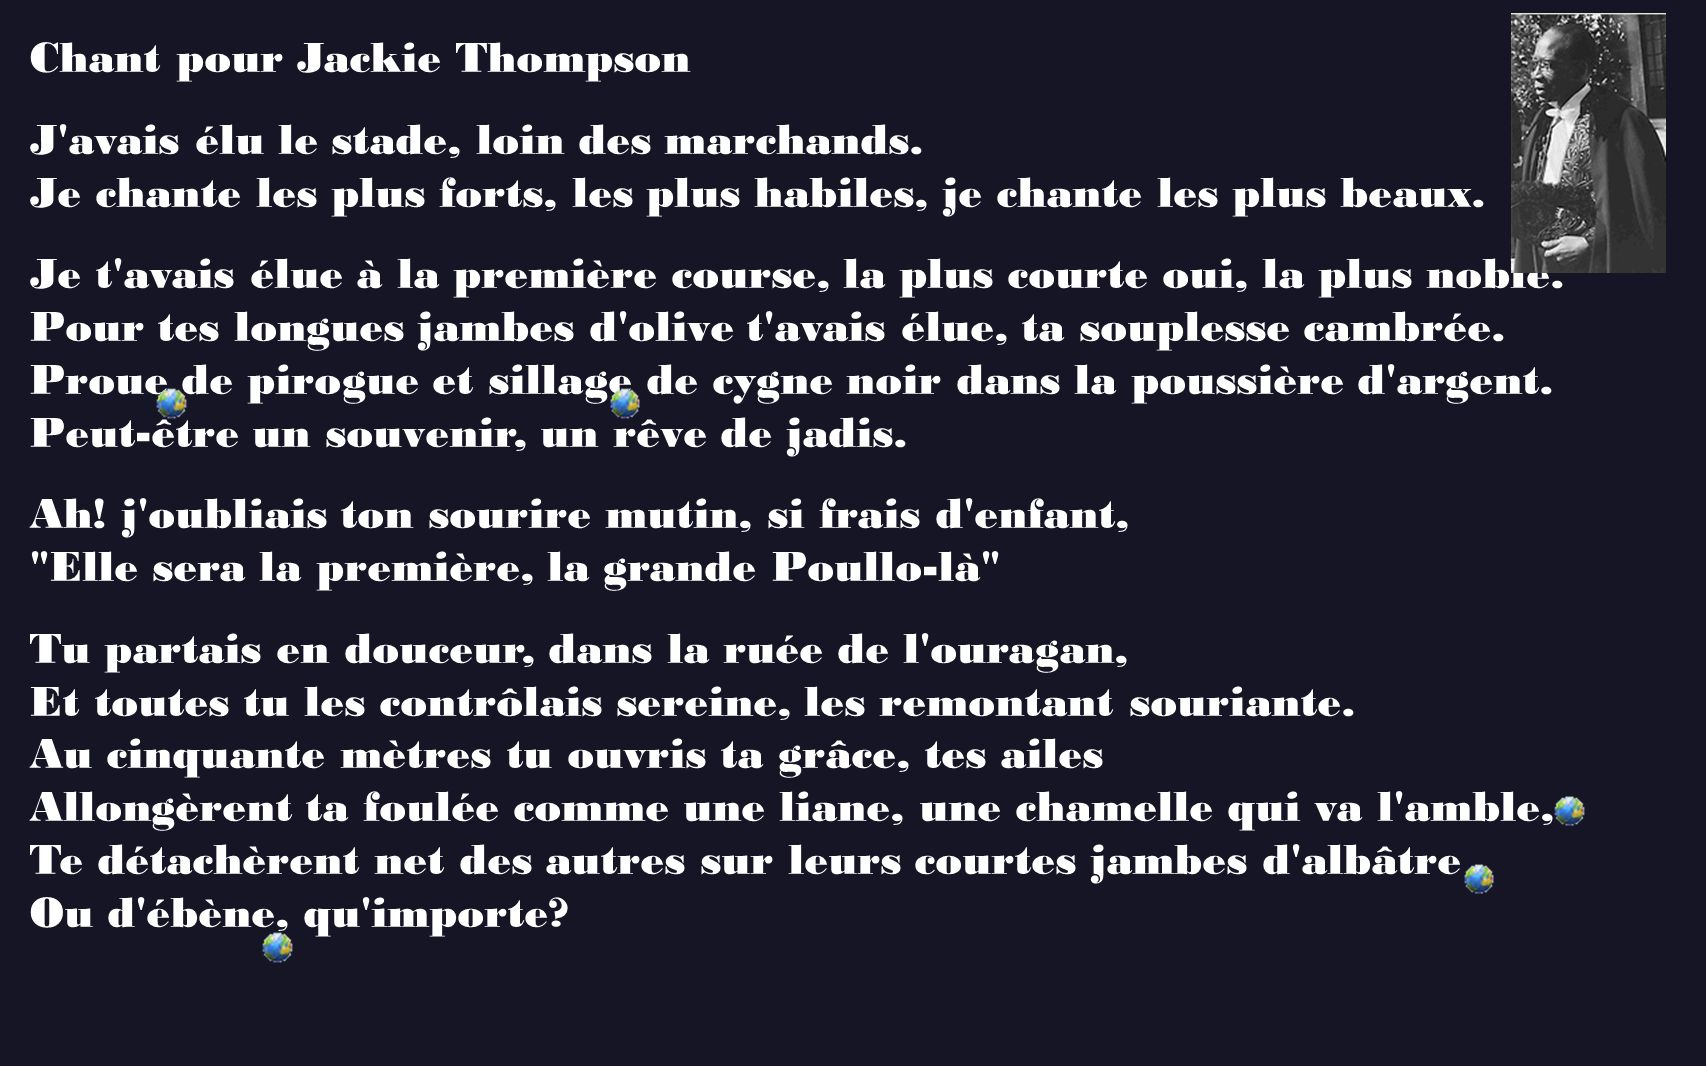 Chant pour Jackie Thompson